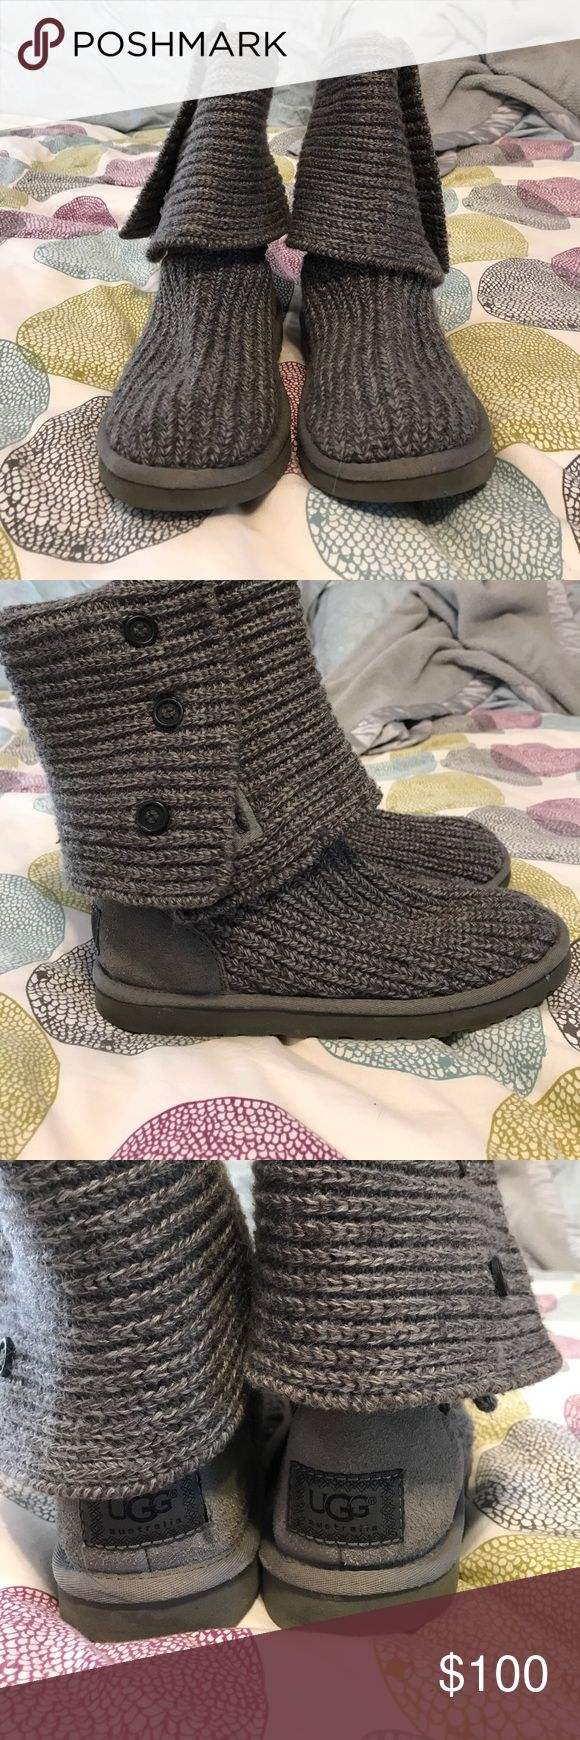 Ugg classic cardy 7 EUC!  I hardy wore these bc I was always scared to get them dirty 😂 they are in great condition, no snags or flaws in the wool.  The bottoms are a little dirty but I can clean them up before selling.  Very very minimal scuffing on heels.  Truly excellent condition! UGG Shoes Winter & Rain Boots